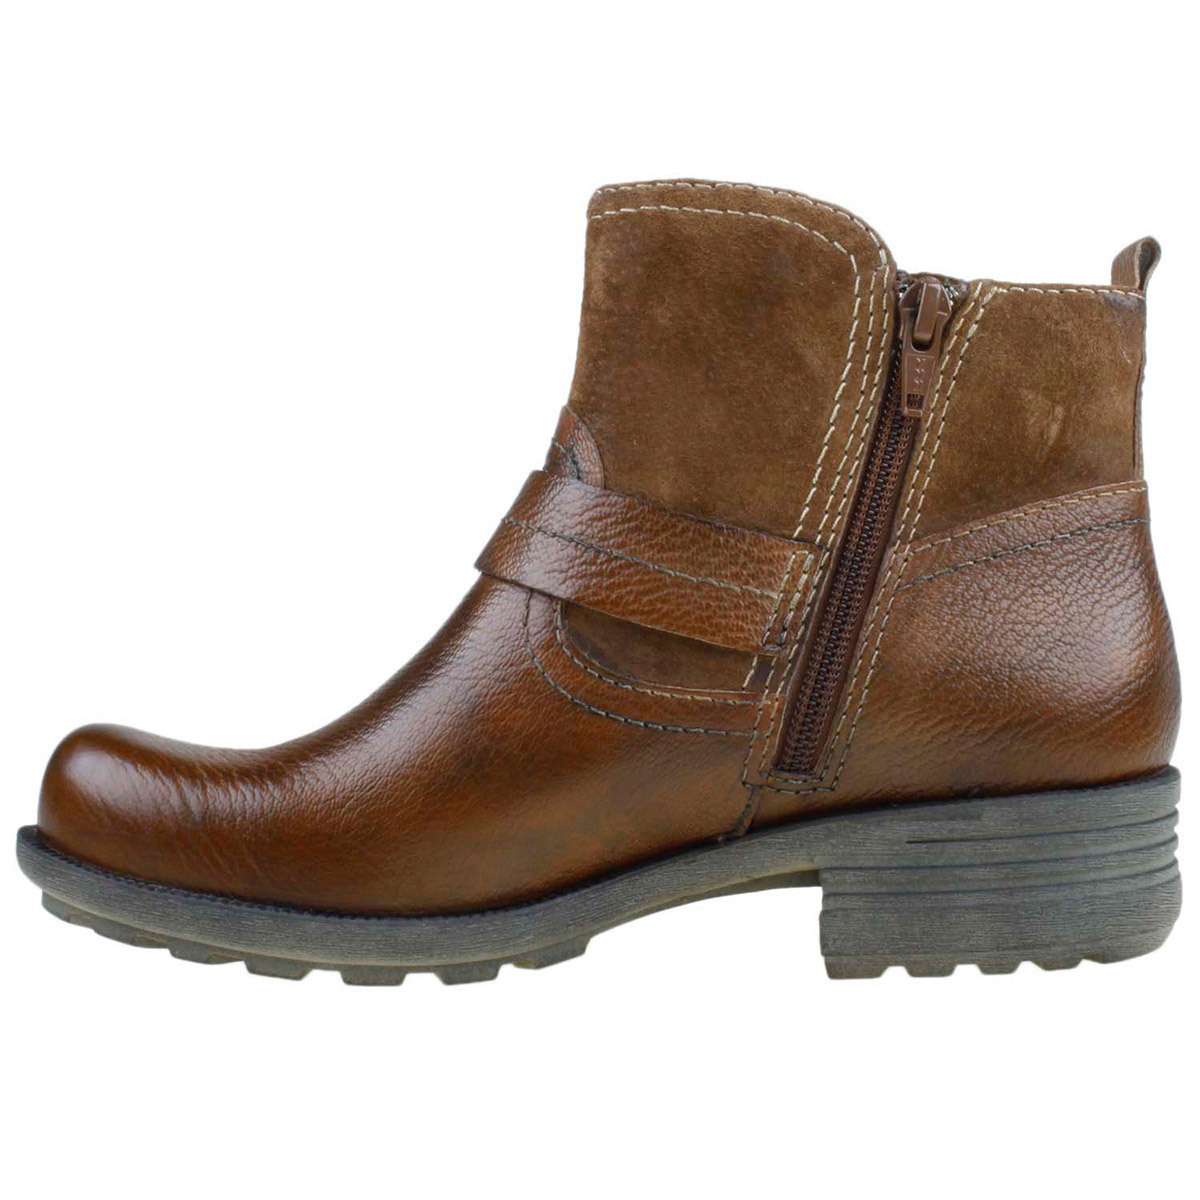 earth origins s ankle boots ebay